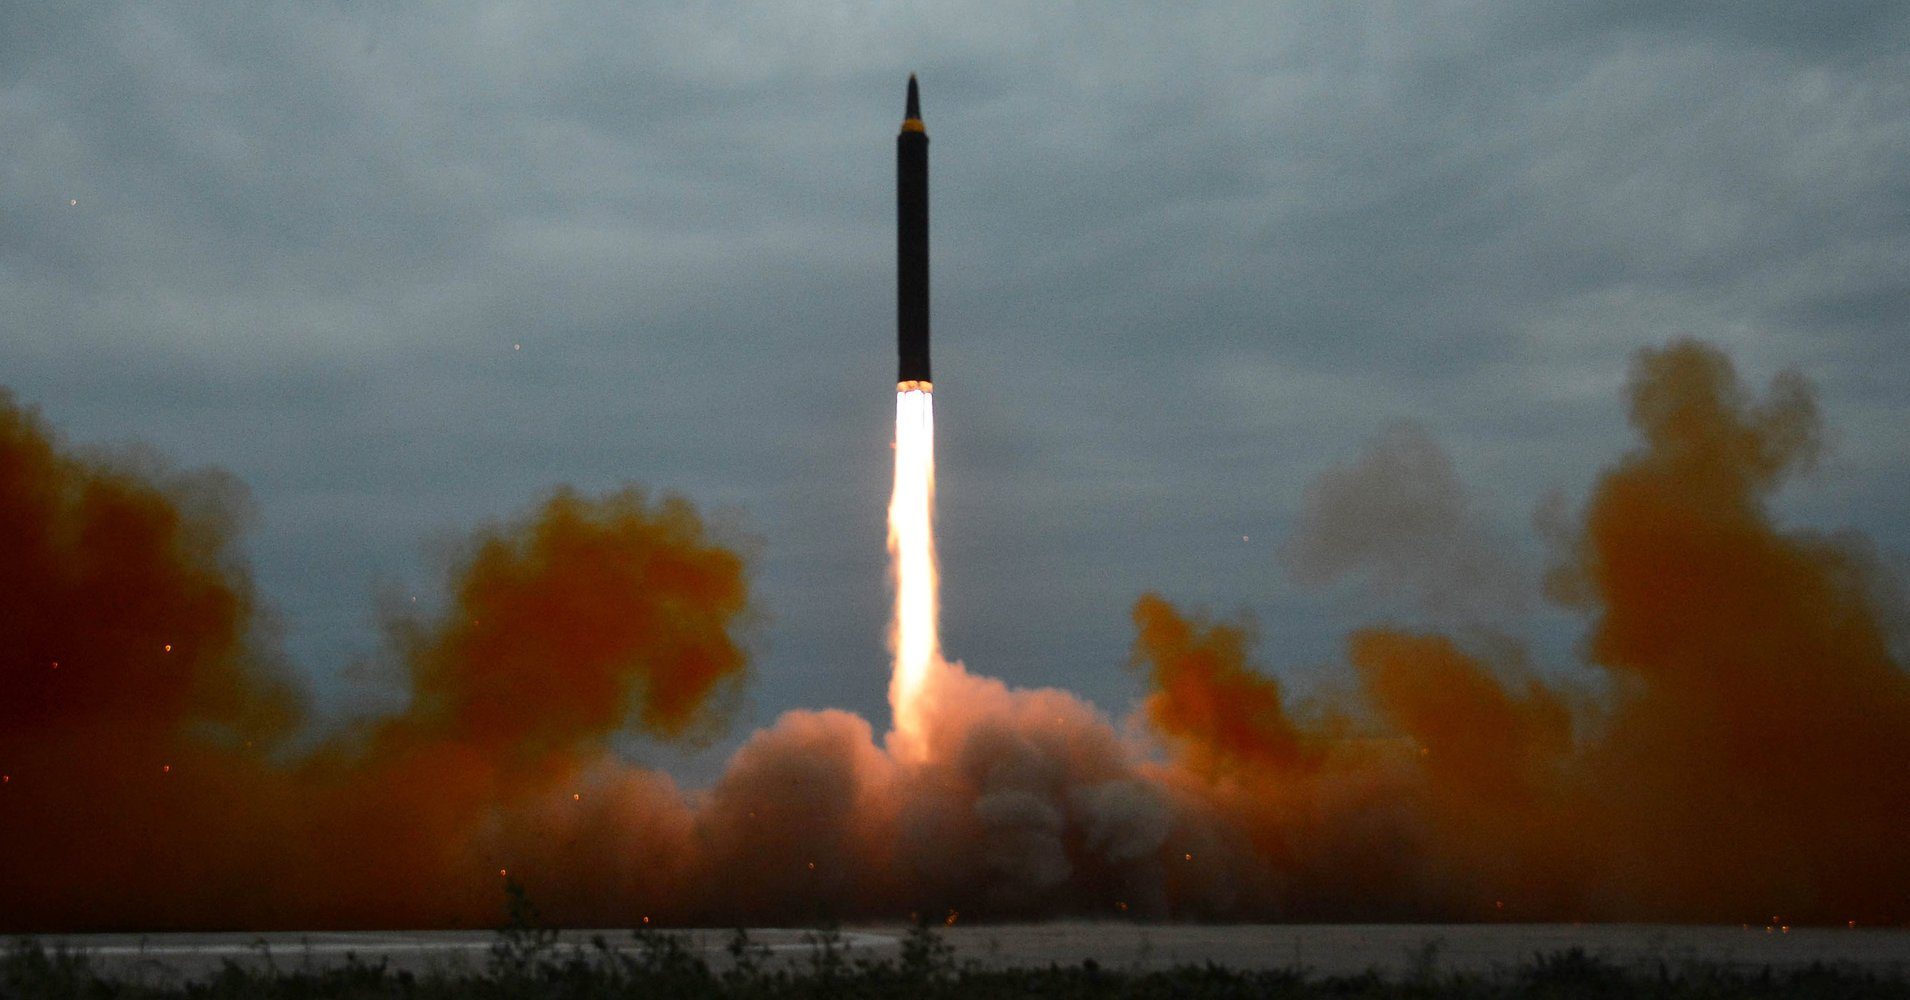 South Korea warns that North Korea may launch more missiles https://t.co/73BM2CERjh https://t.co/AQ7Necruoo